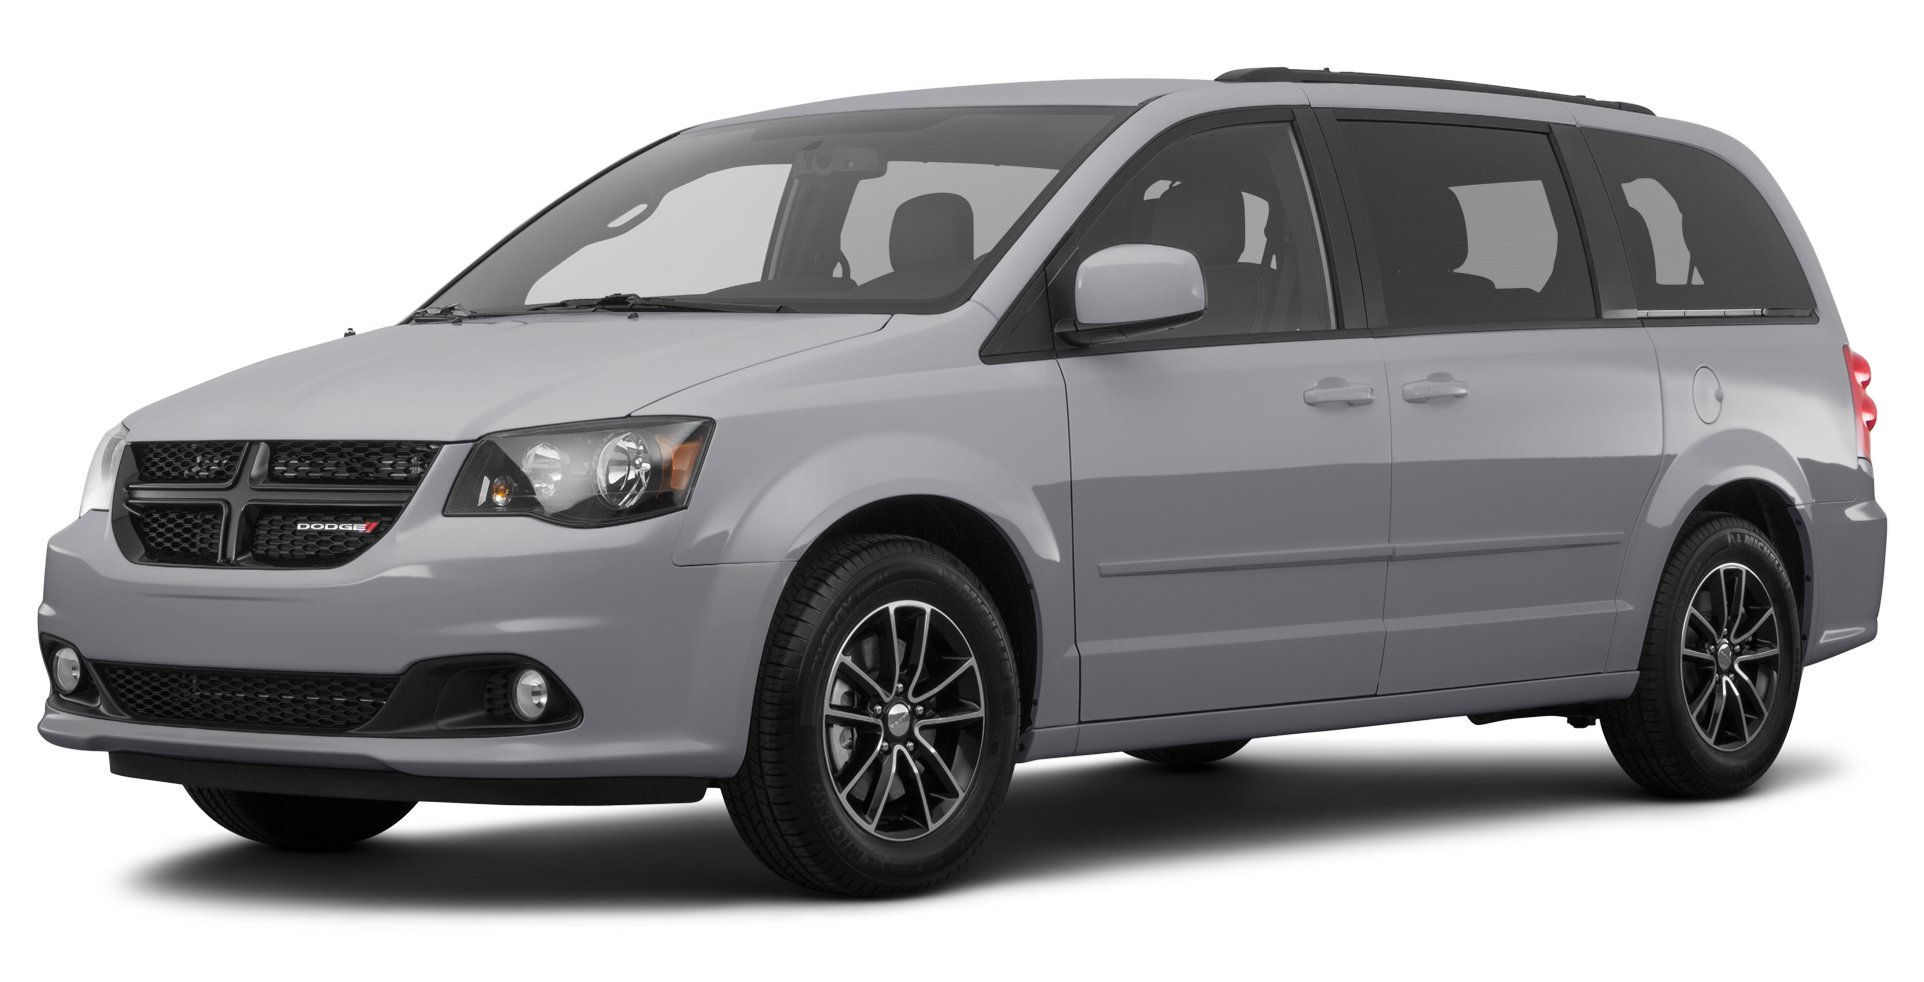 2017 dodge grand caravan reviews images and. Black Bedroom Furniture Sets. Home Design Ideas